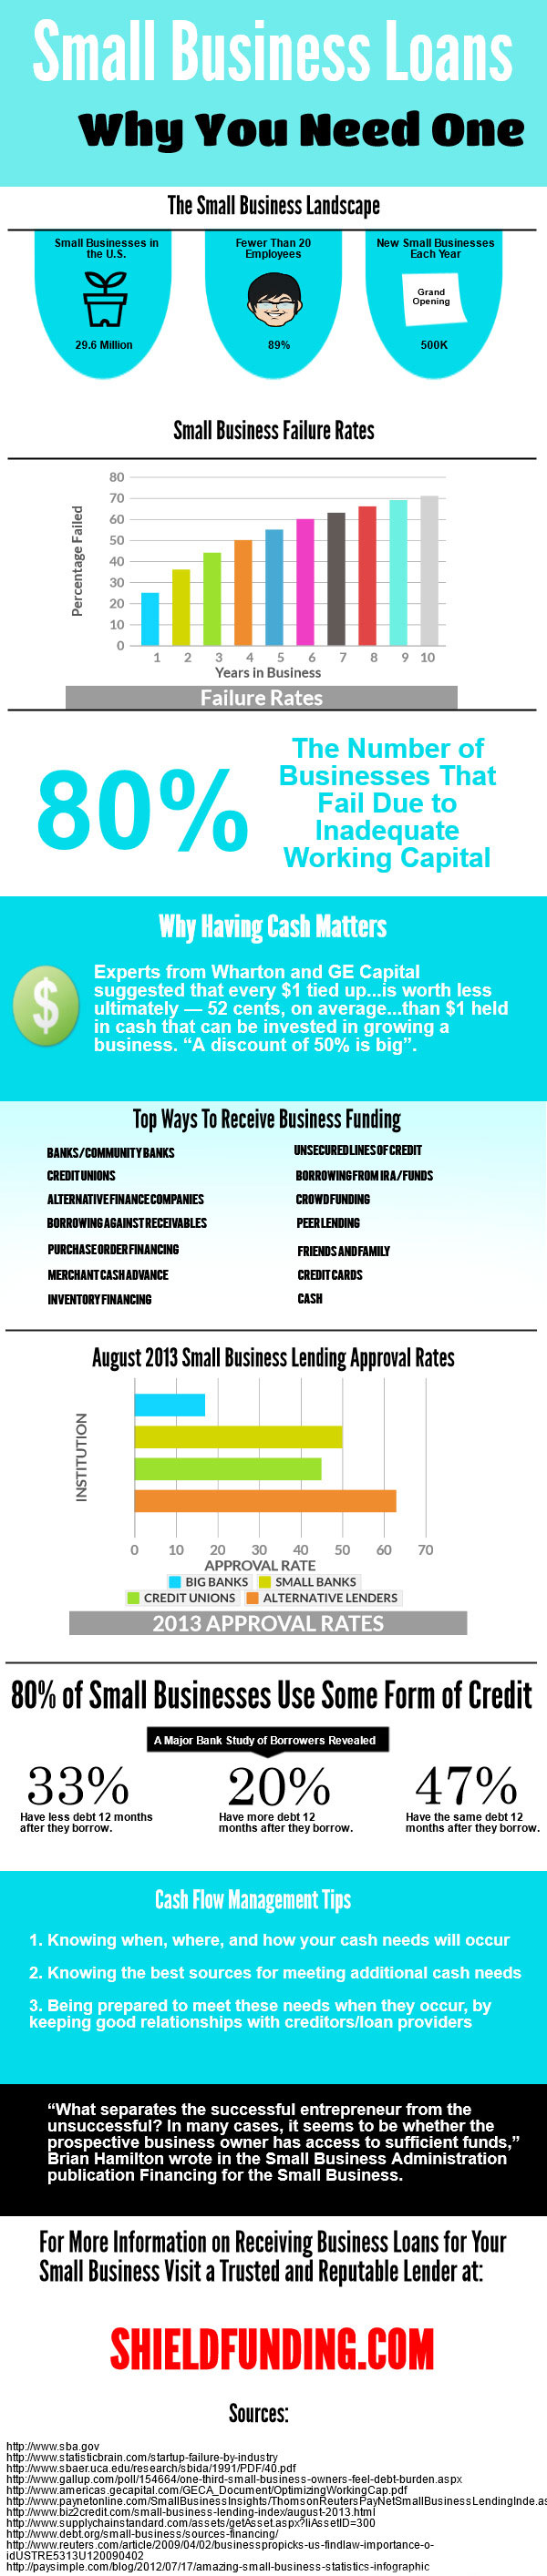 Small Business Funding-Infographic